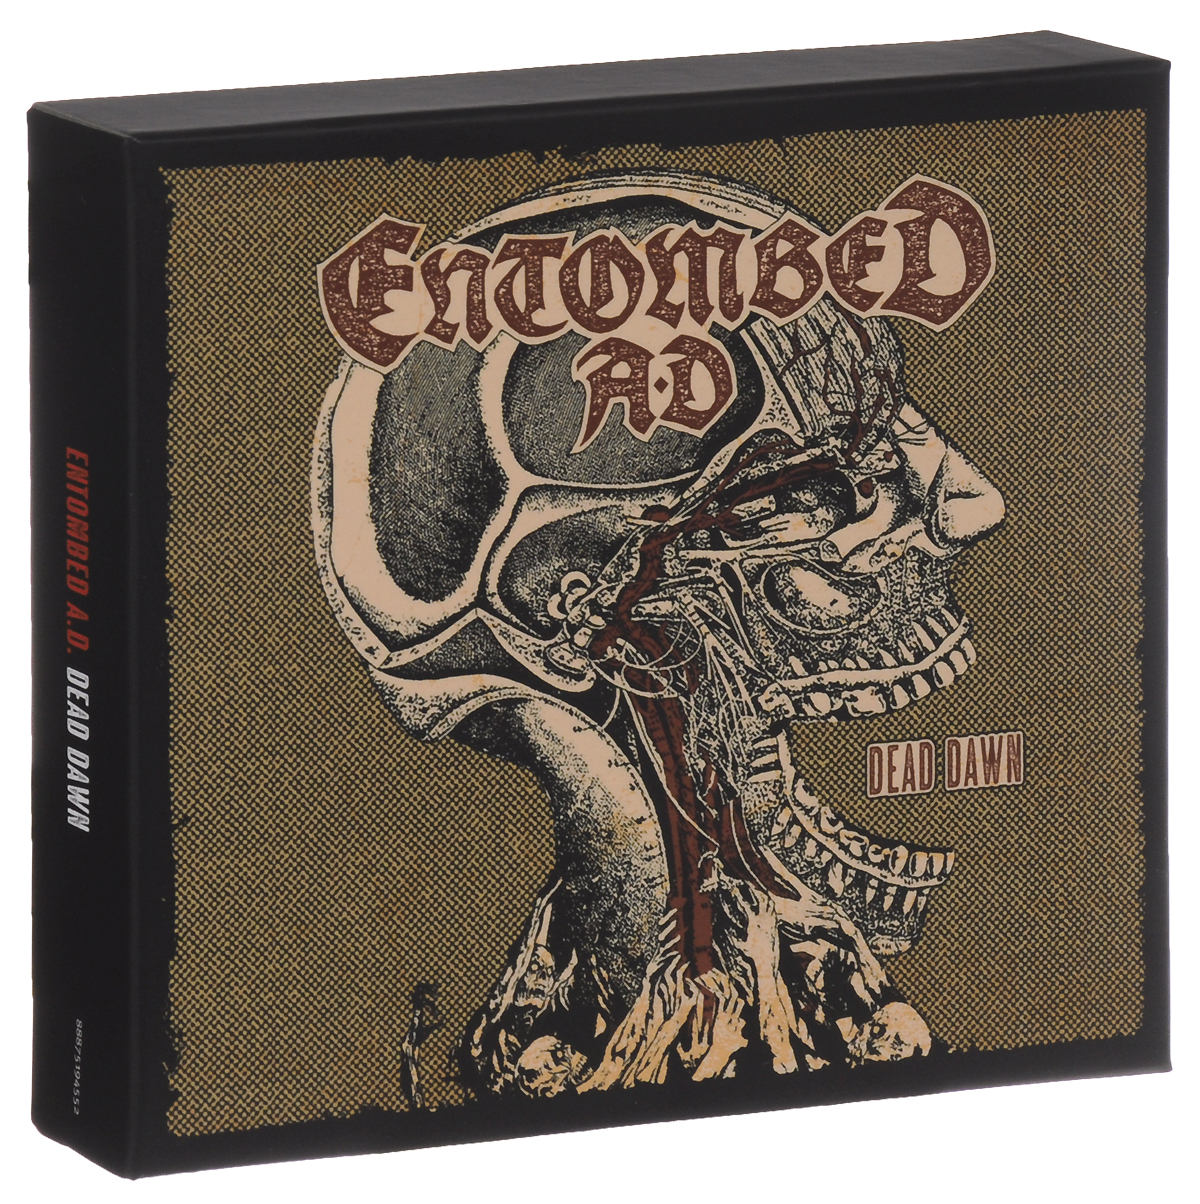 Entombed A.D. Entombed A.D. Dead Dawn (+ Audio MC) side by side international version 3